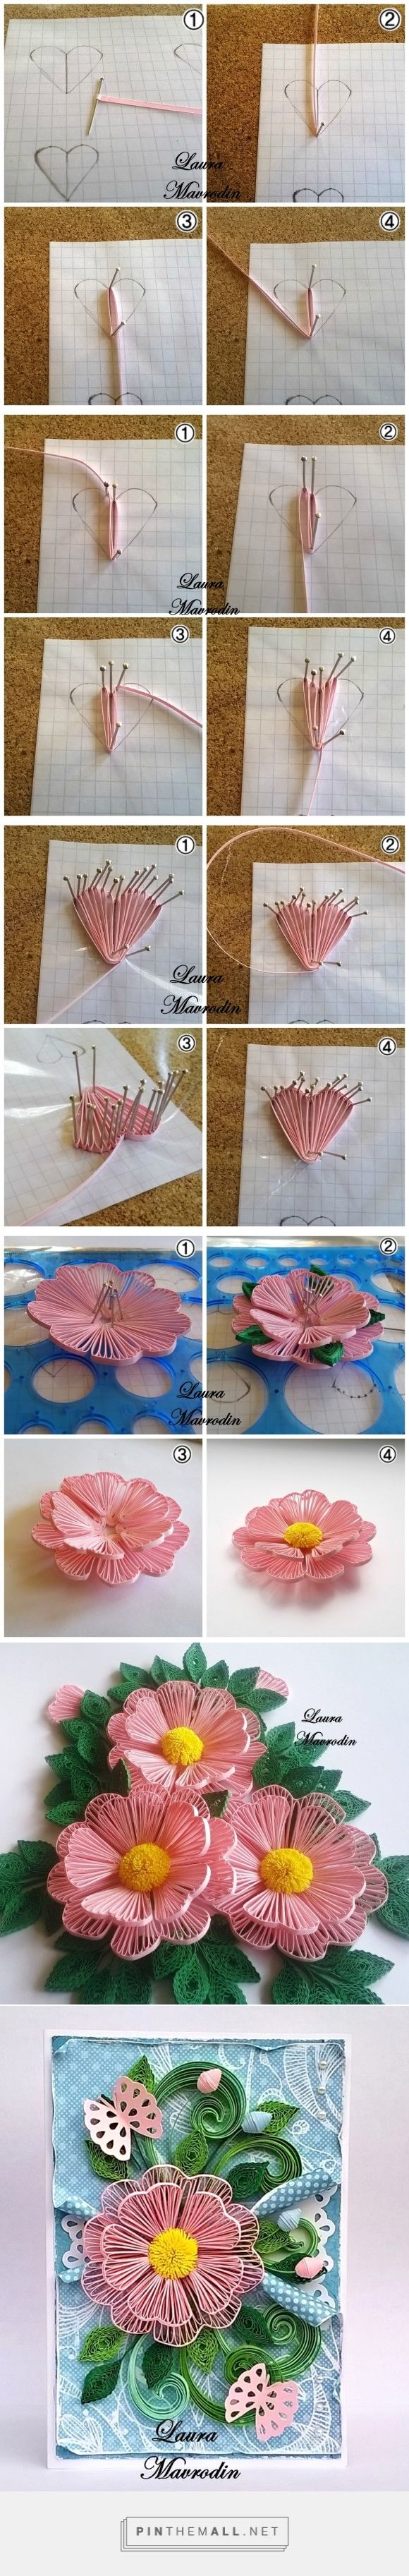 Technika quilling: Husking – kurs na kwiaty « Blog sklepu internetowego Na-Strychu.pl... - a grouped images picture - Pin Them All More